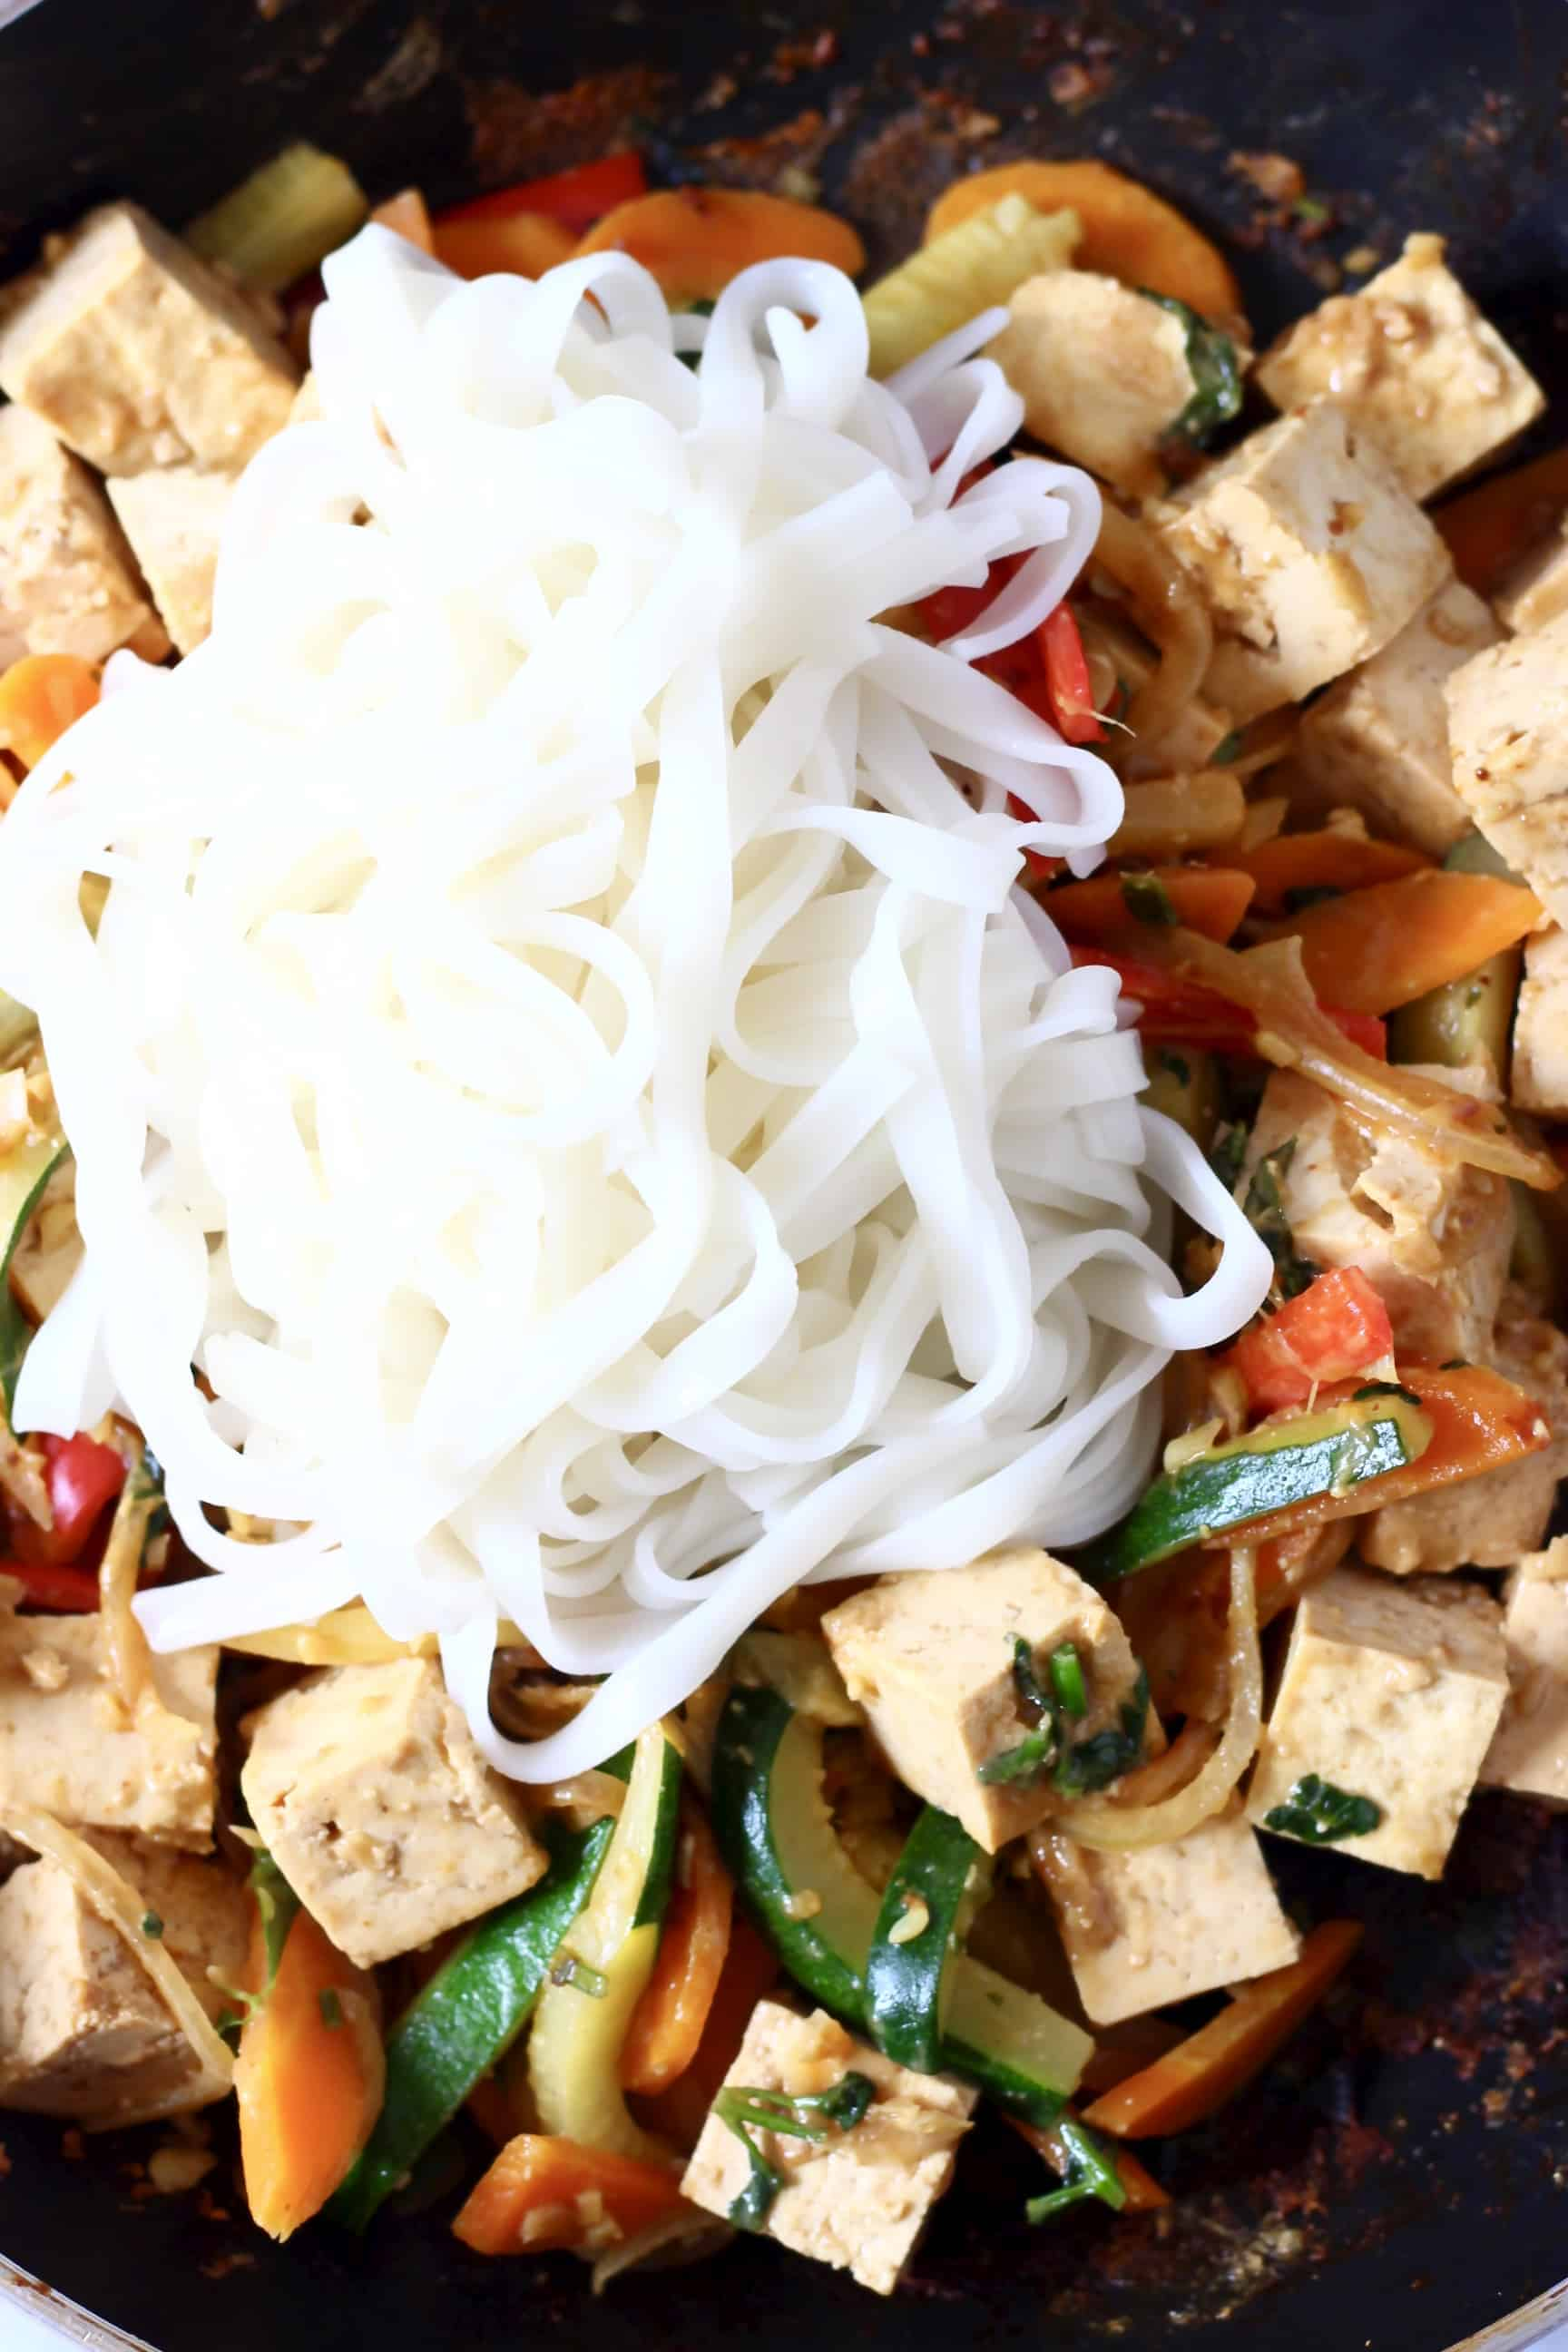 Chopped vegetables, tofu cubes and rice noodles in a frying pan